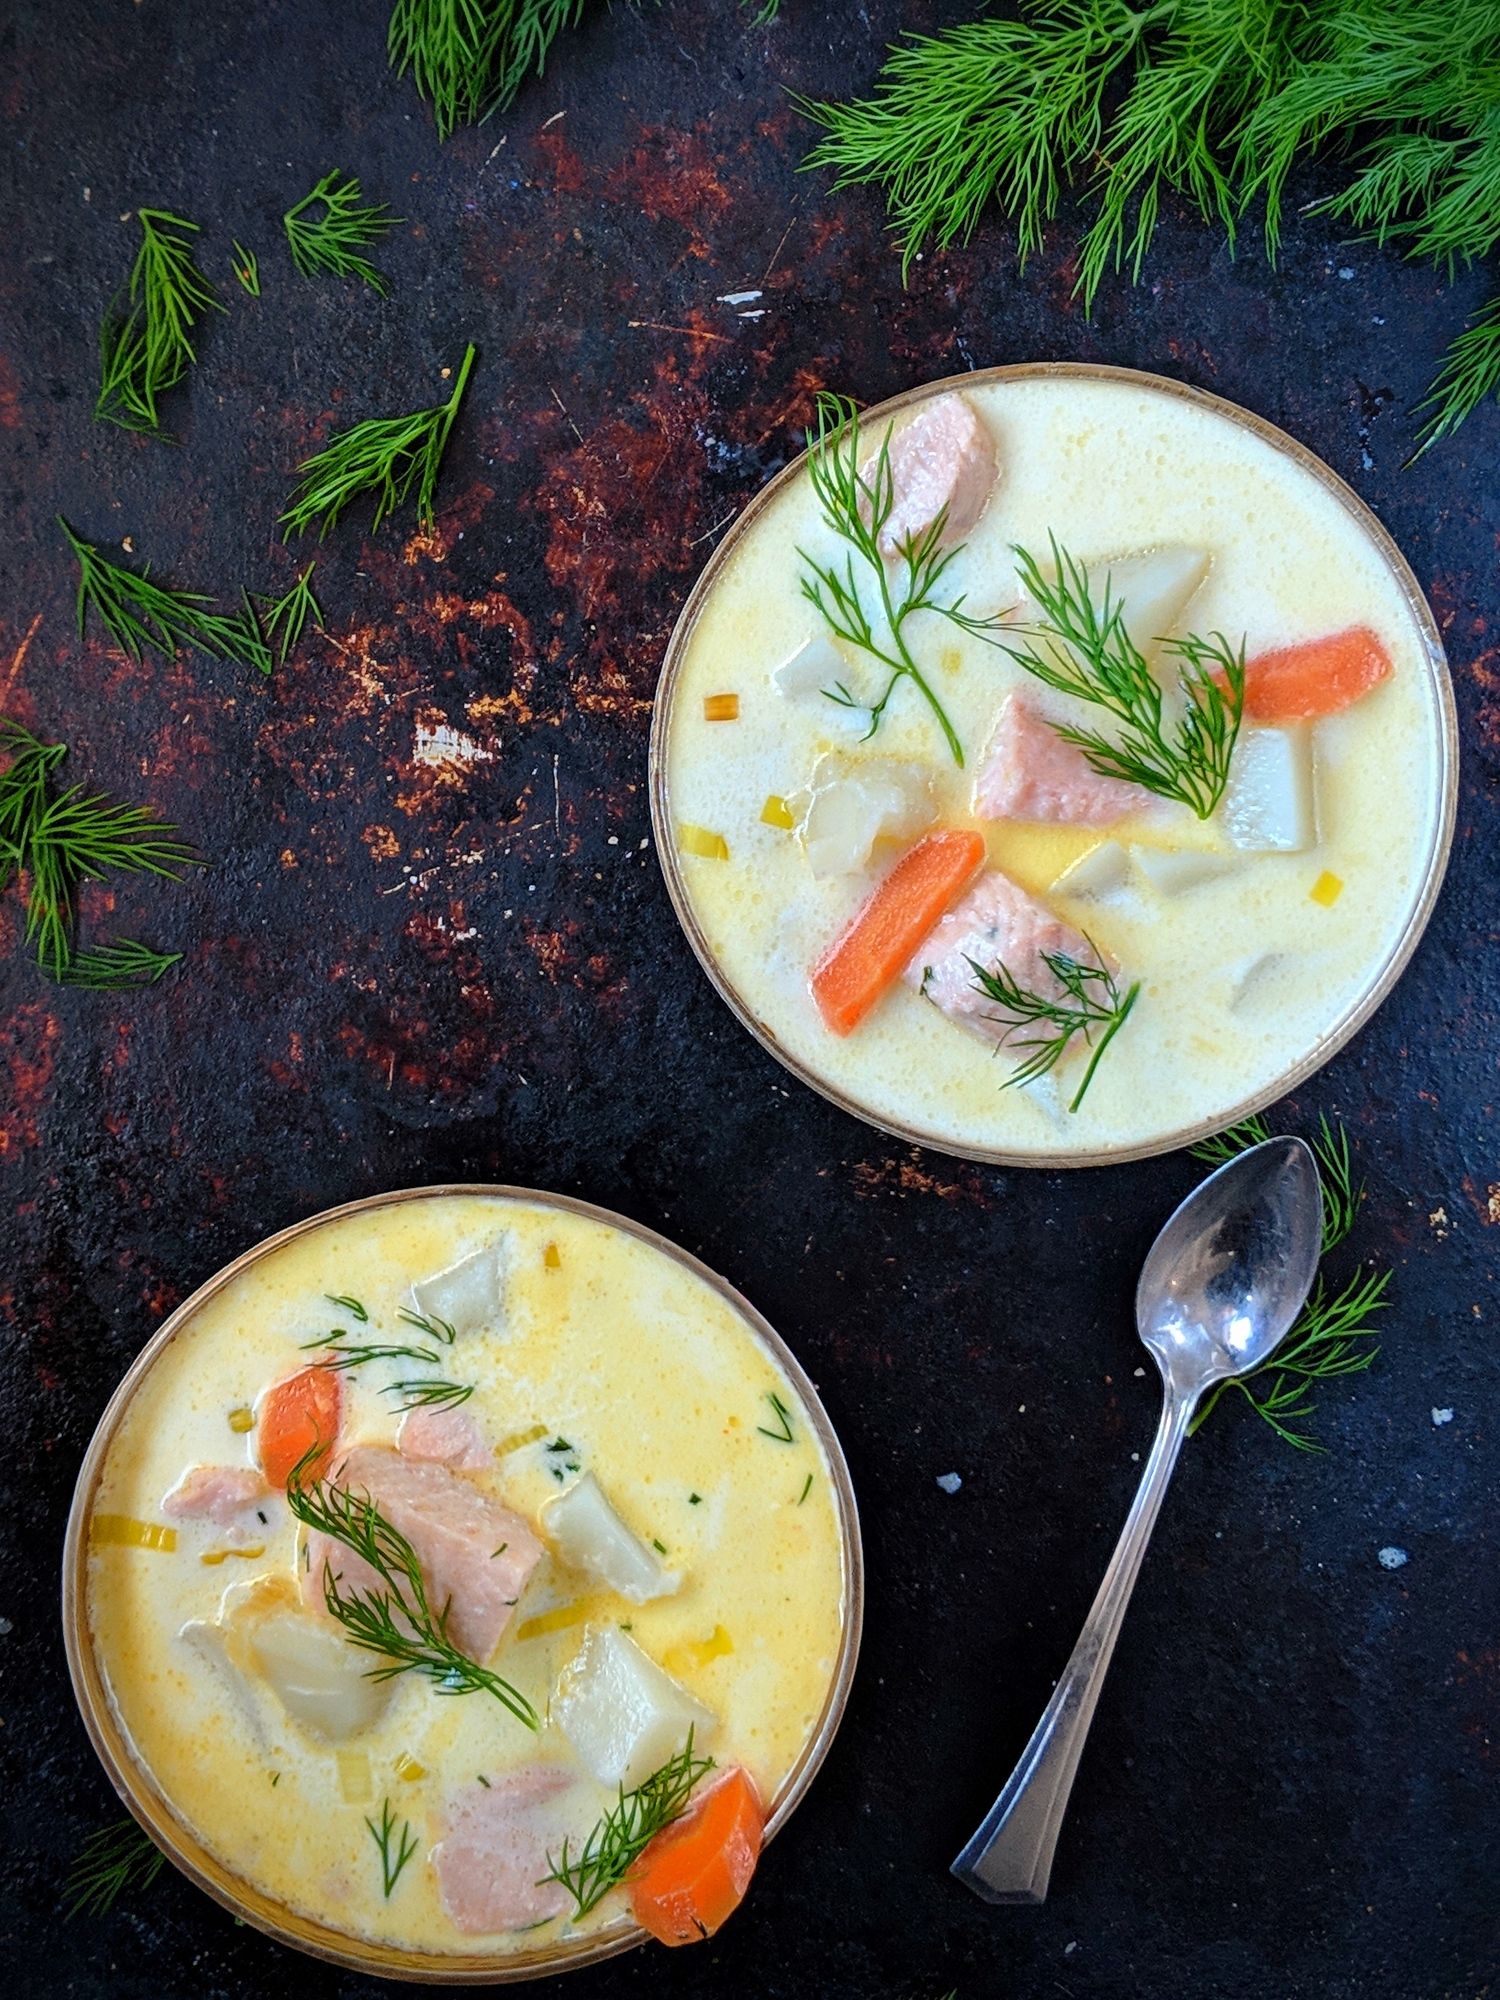 This Finnish salmon soup recipe is known as Lohikeitto and it is so easy to make with only 7 ingredients.